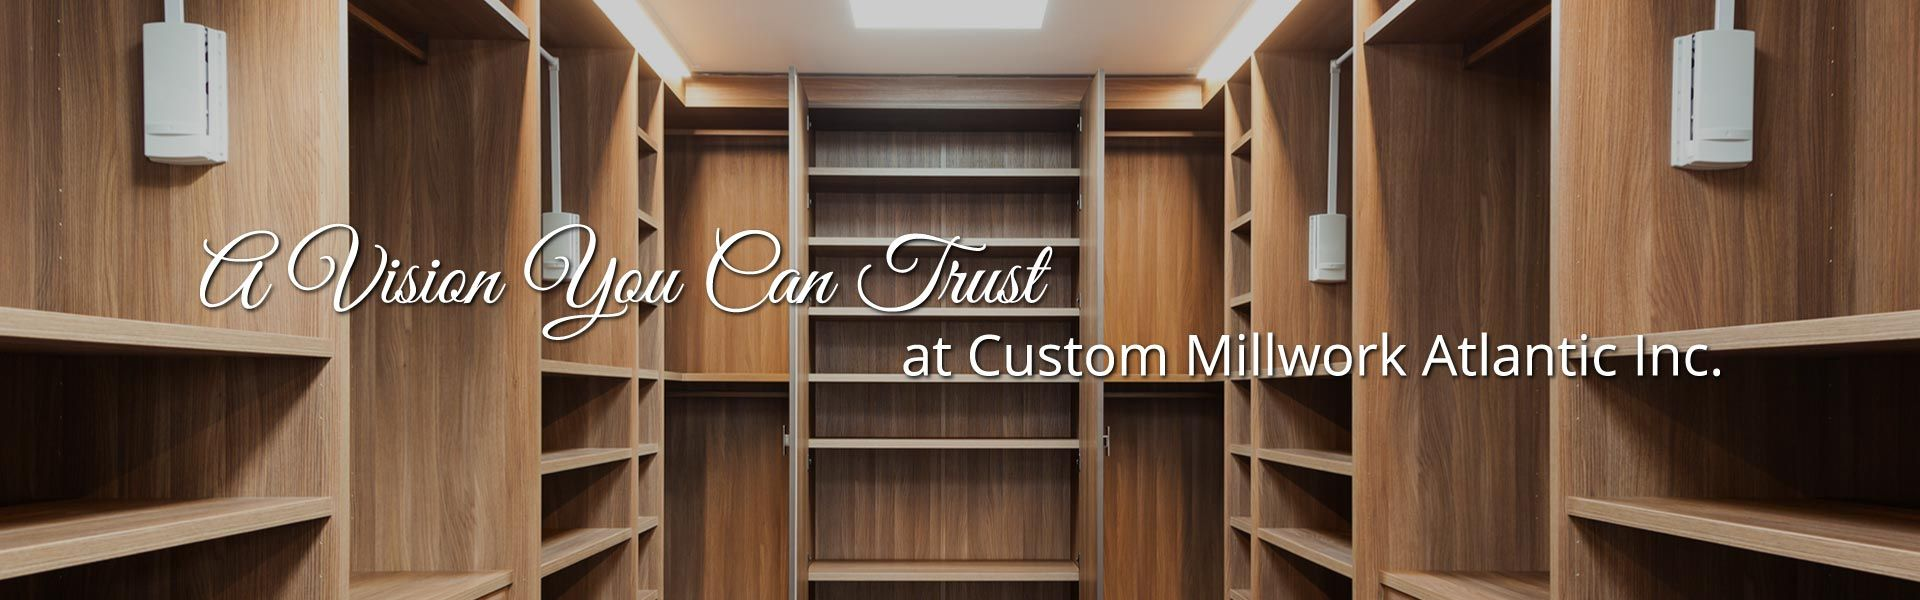 A Vision You Can Trust at Custom Millwork Atlantic Inc. | custom built shelves